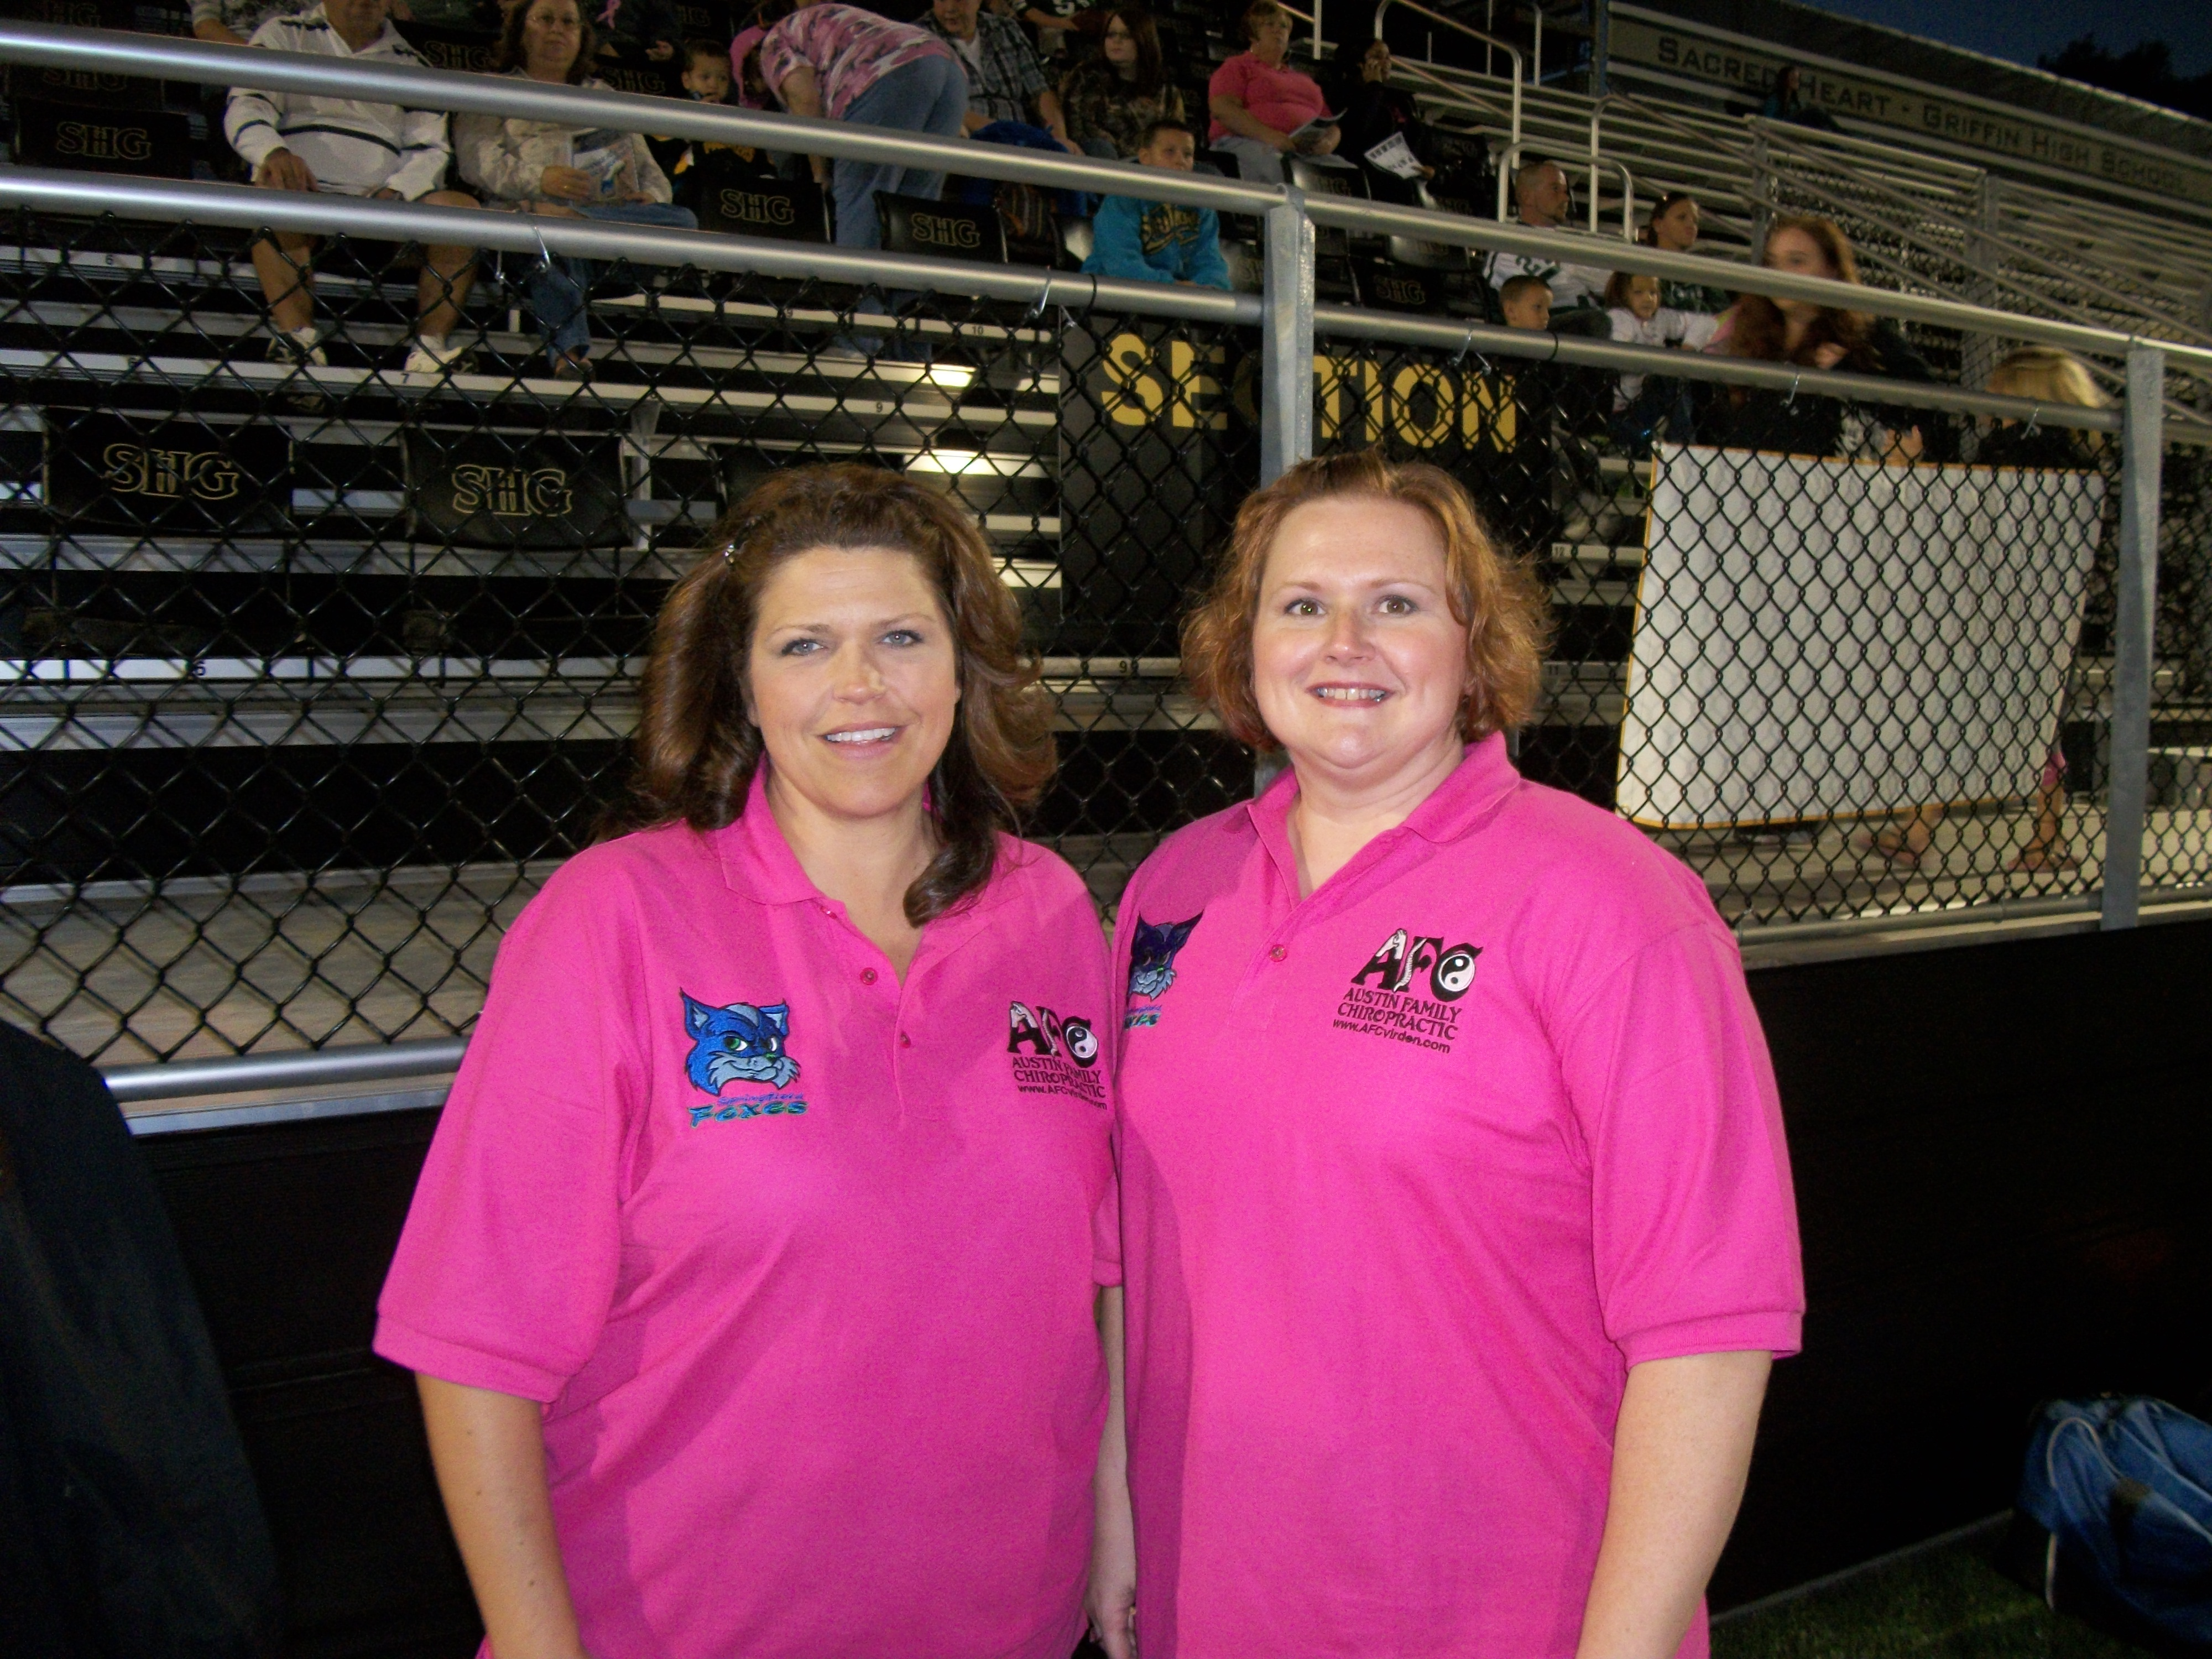 Nina and Gena, my 2 assistant trainers for the Foxes 2012 Breast Cancer Awareness Game.